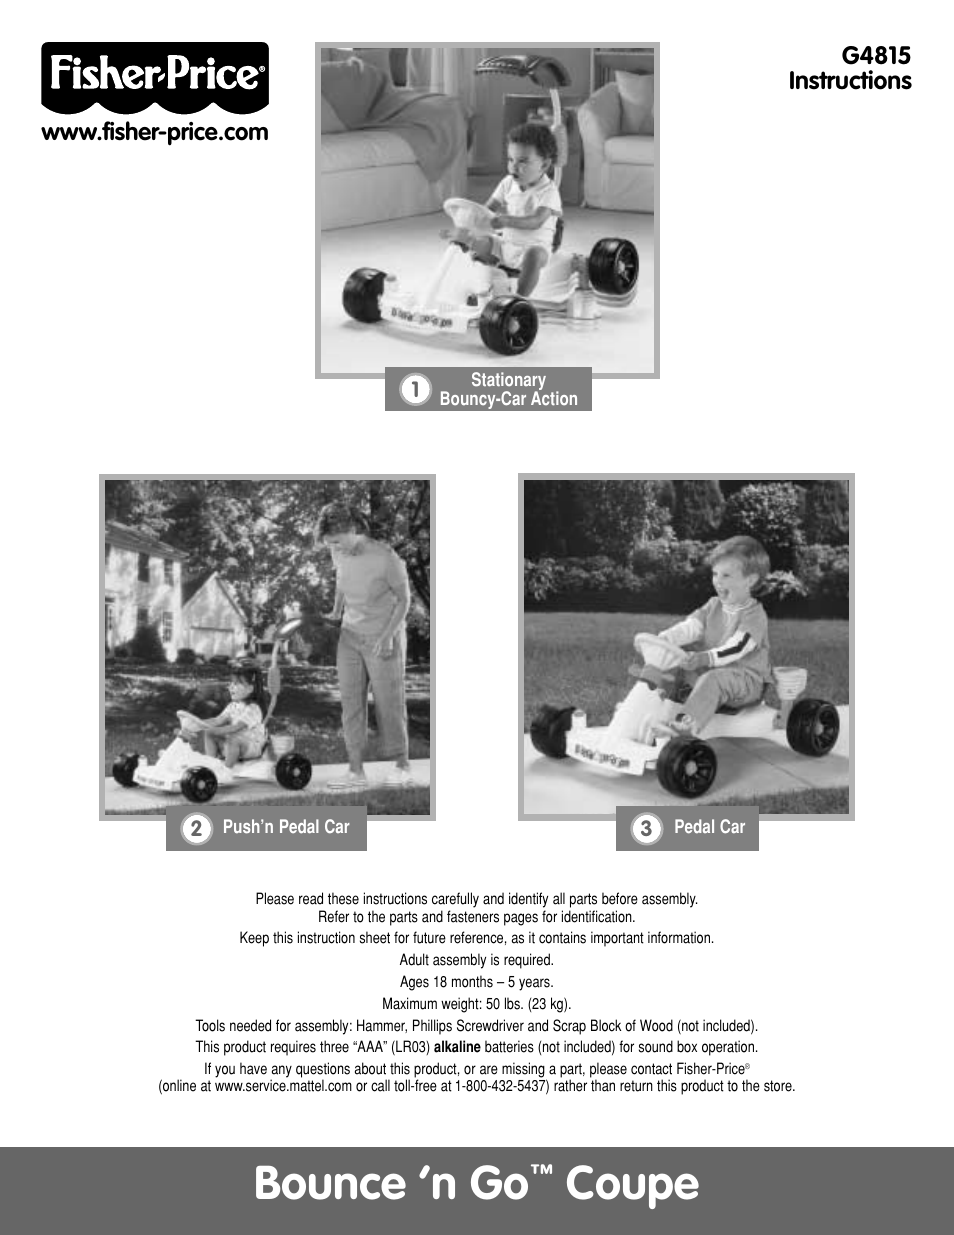 Fisher-Price BOUNCE N GO G4815 User Manual | 16 pages